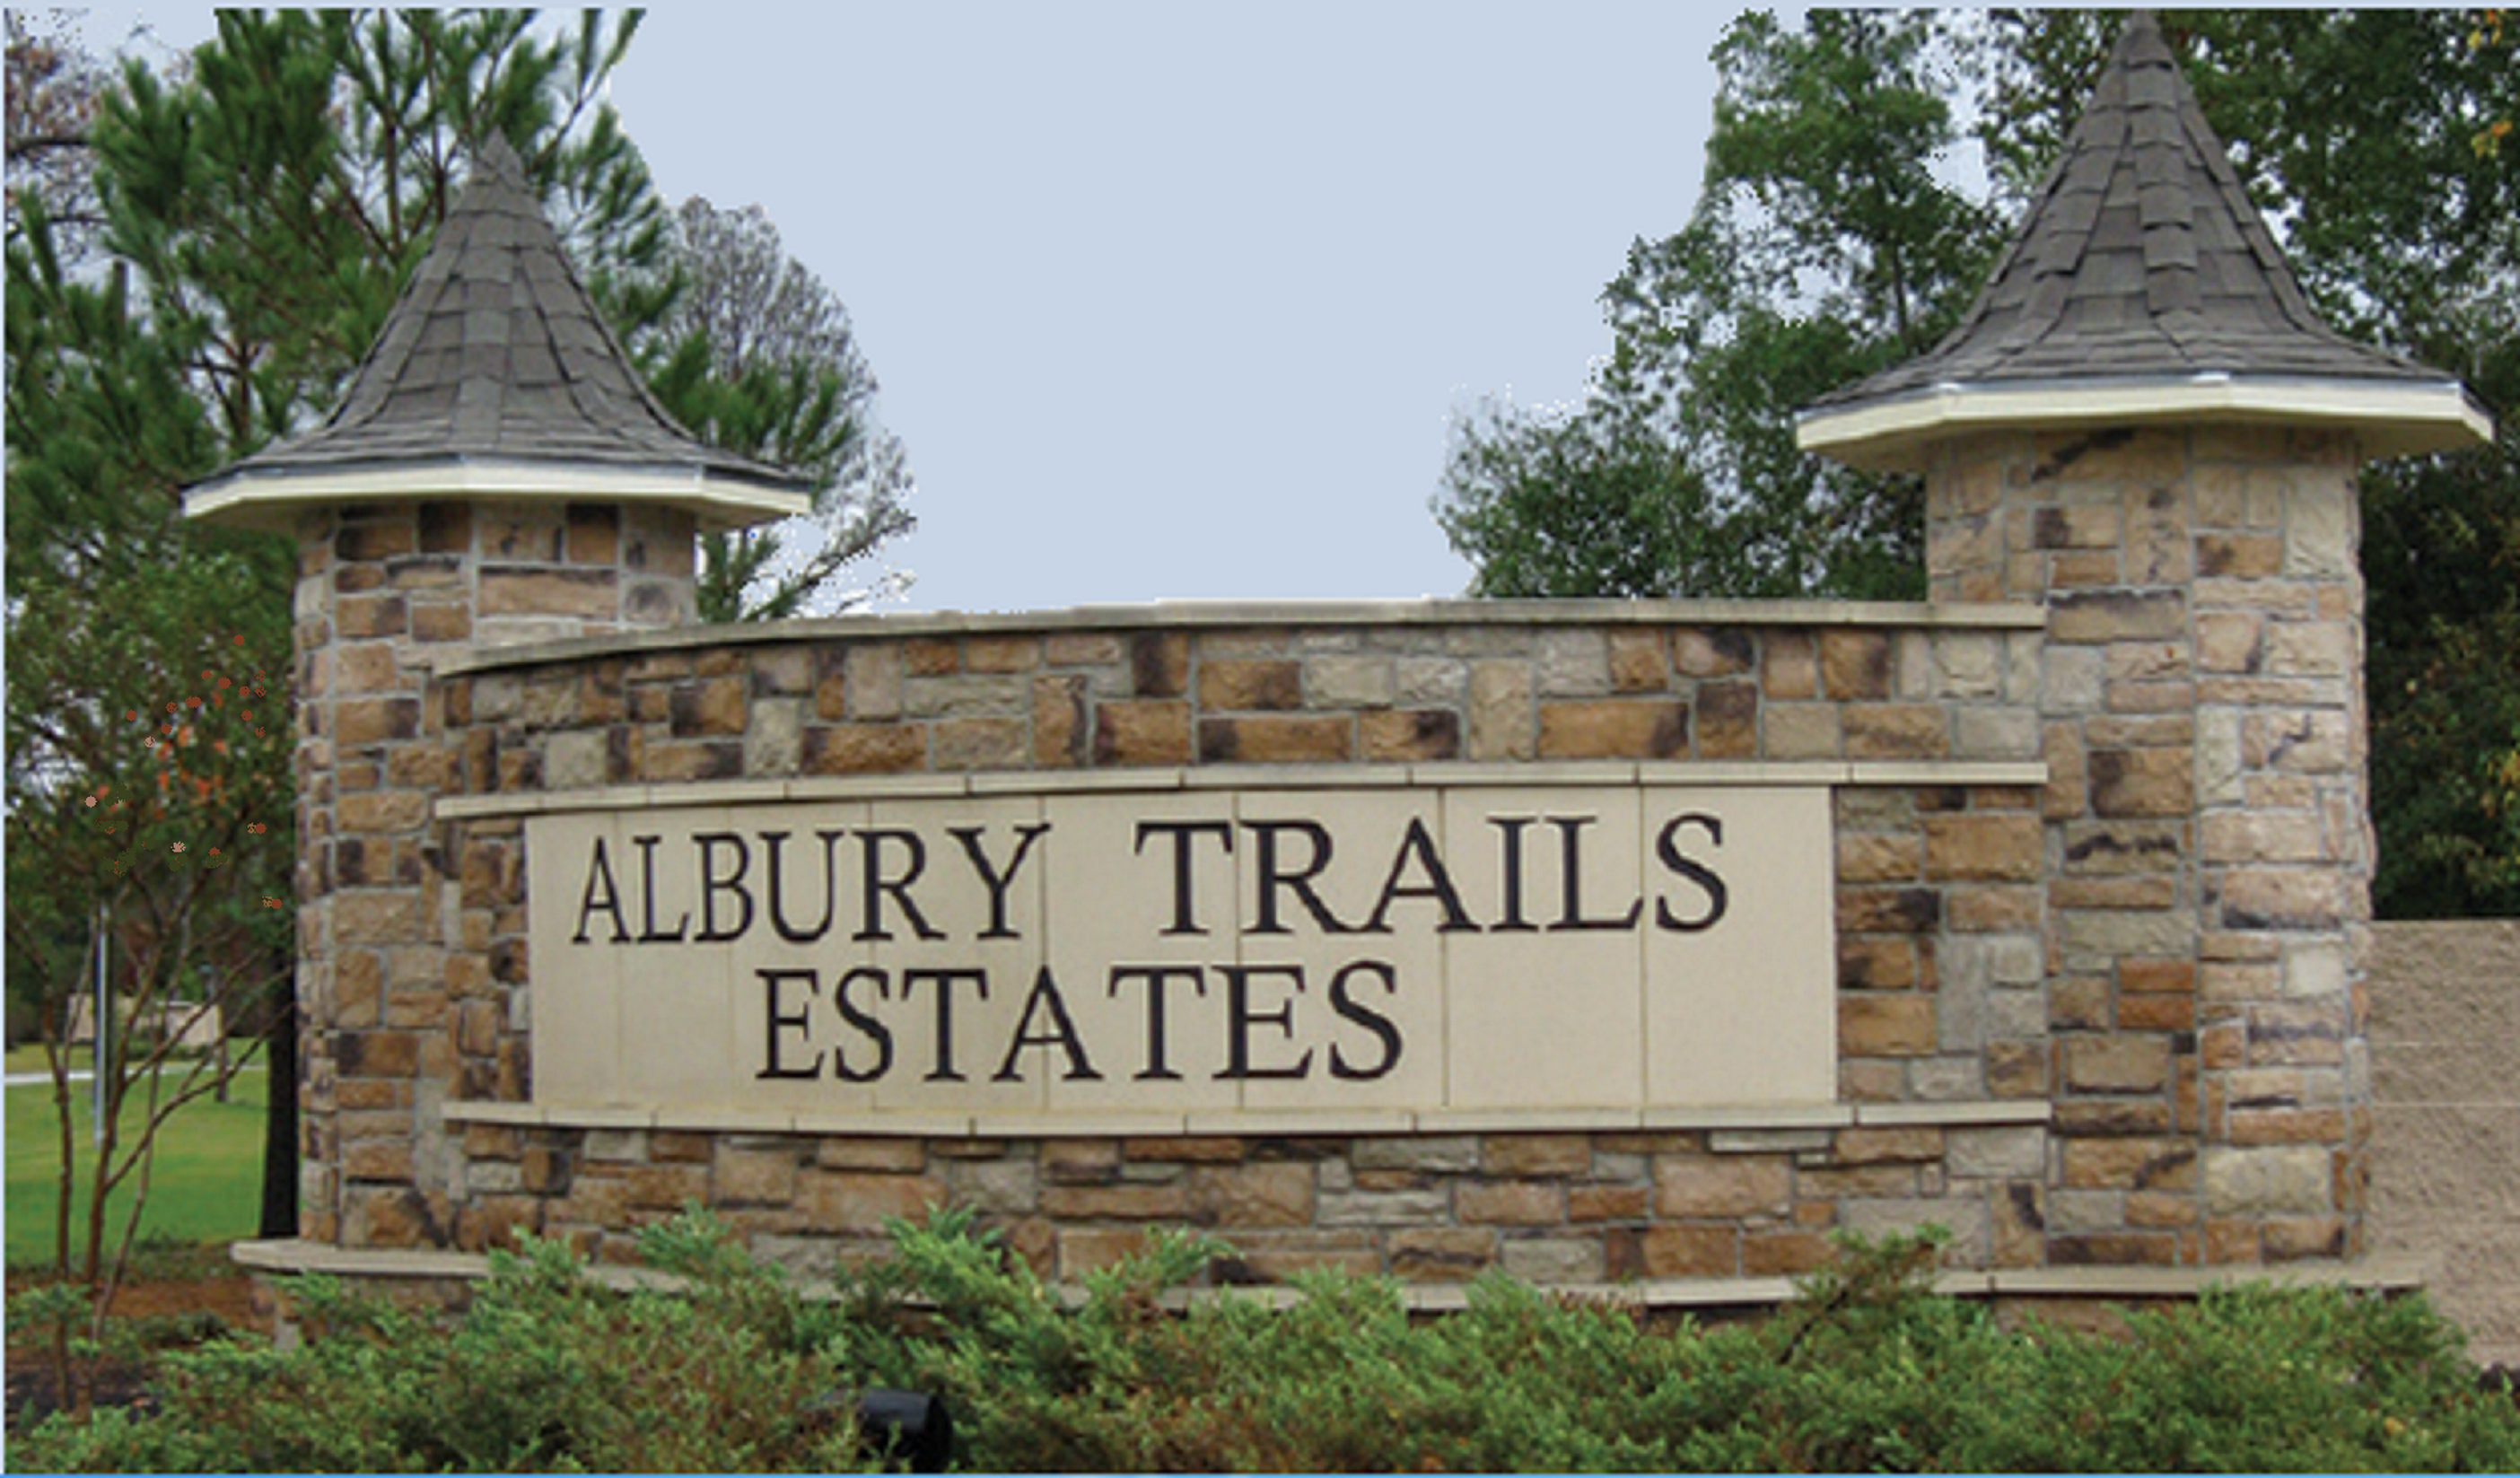 Albury Trails Estates